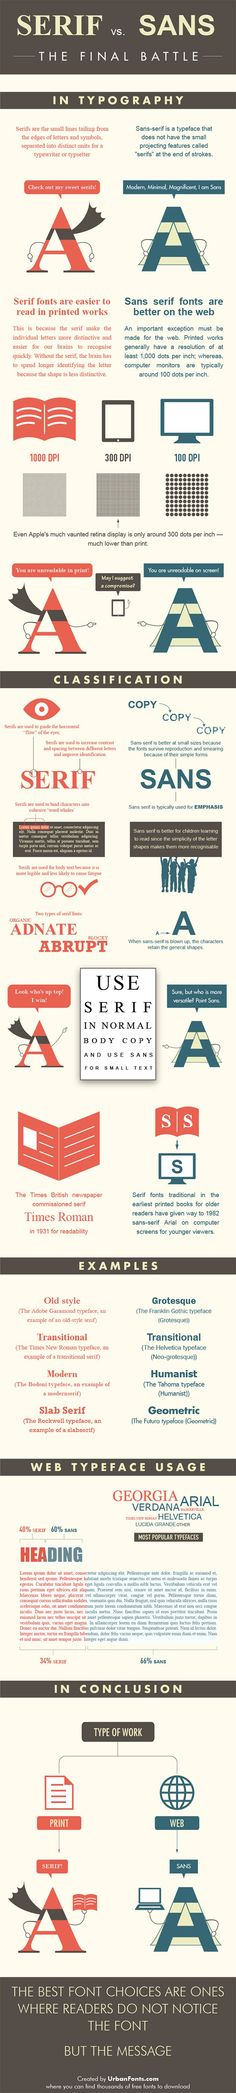 Serif vs Sans Inffographic by Urban Fonts